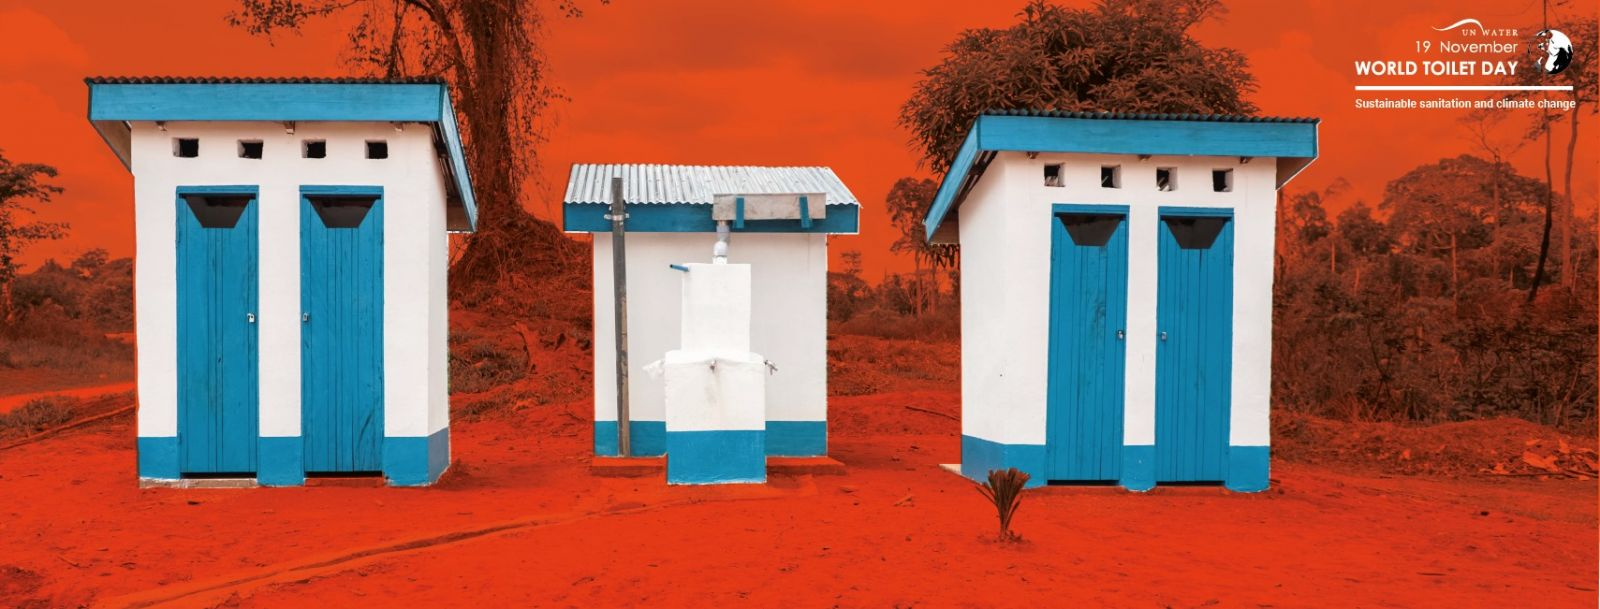 19 November: Today is World Toilet Day